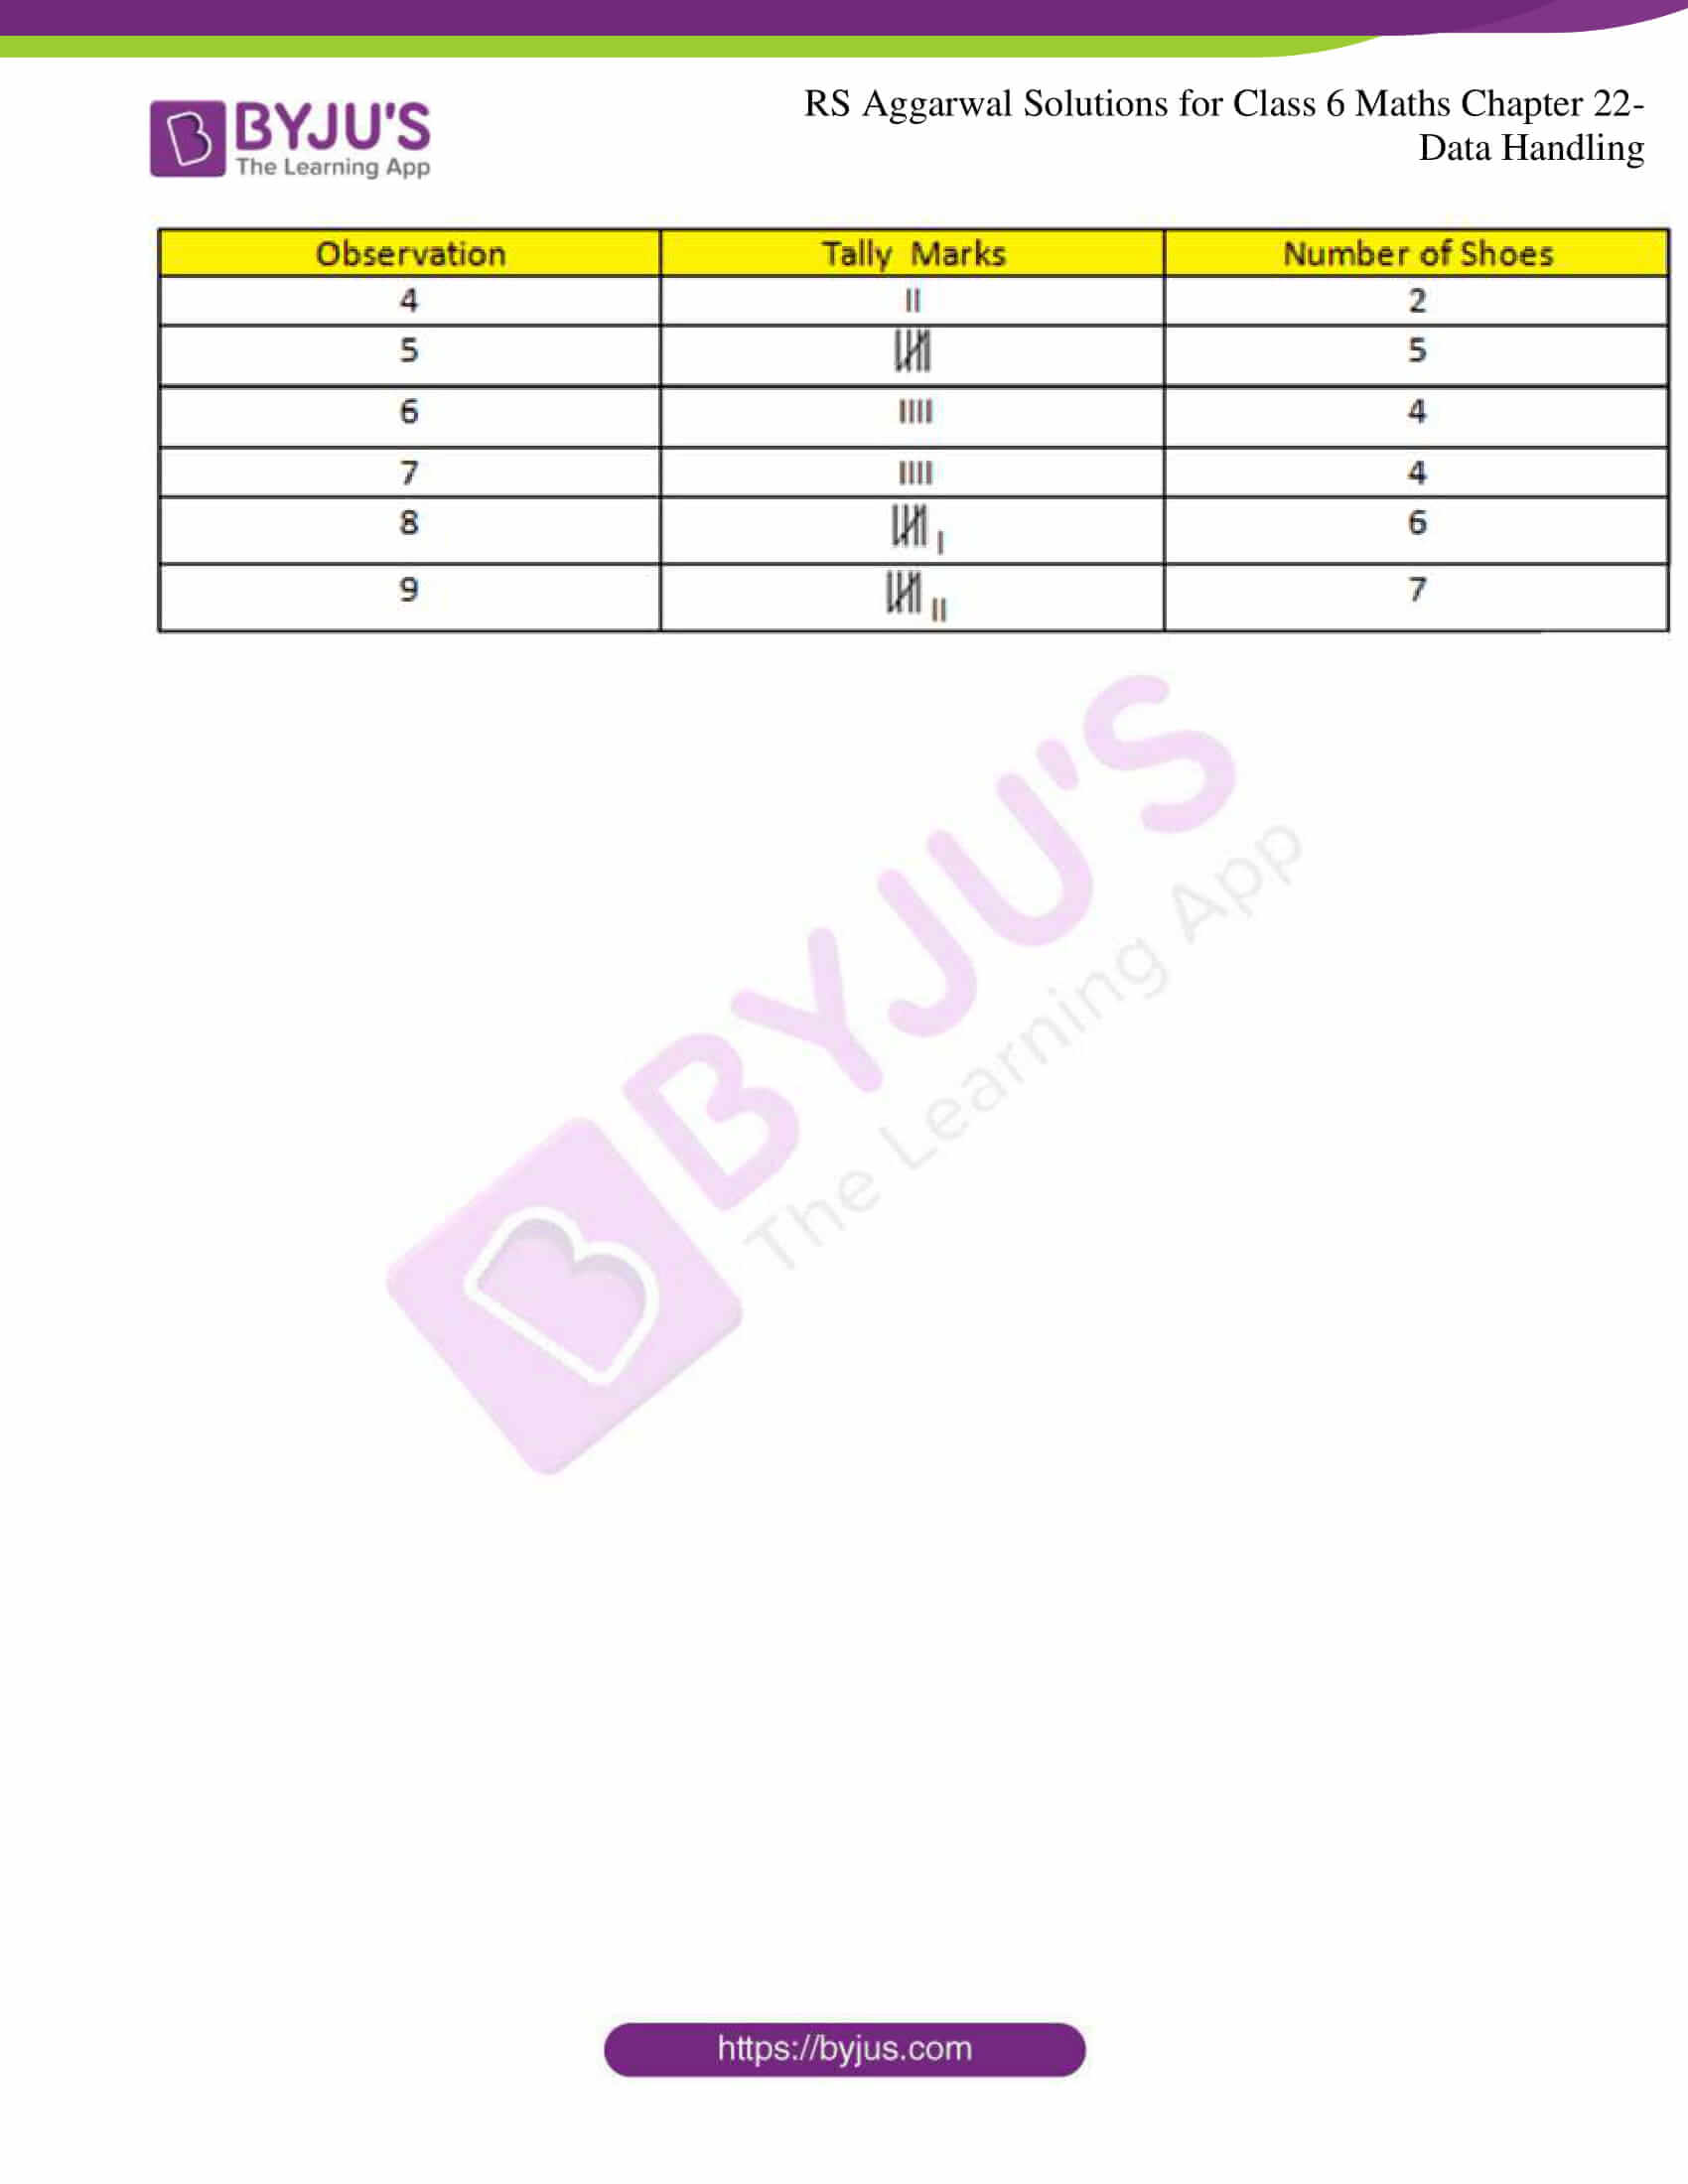 rs aggarwal solutions for class 6 maths chapter 22 2